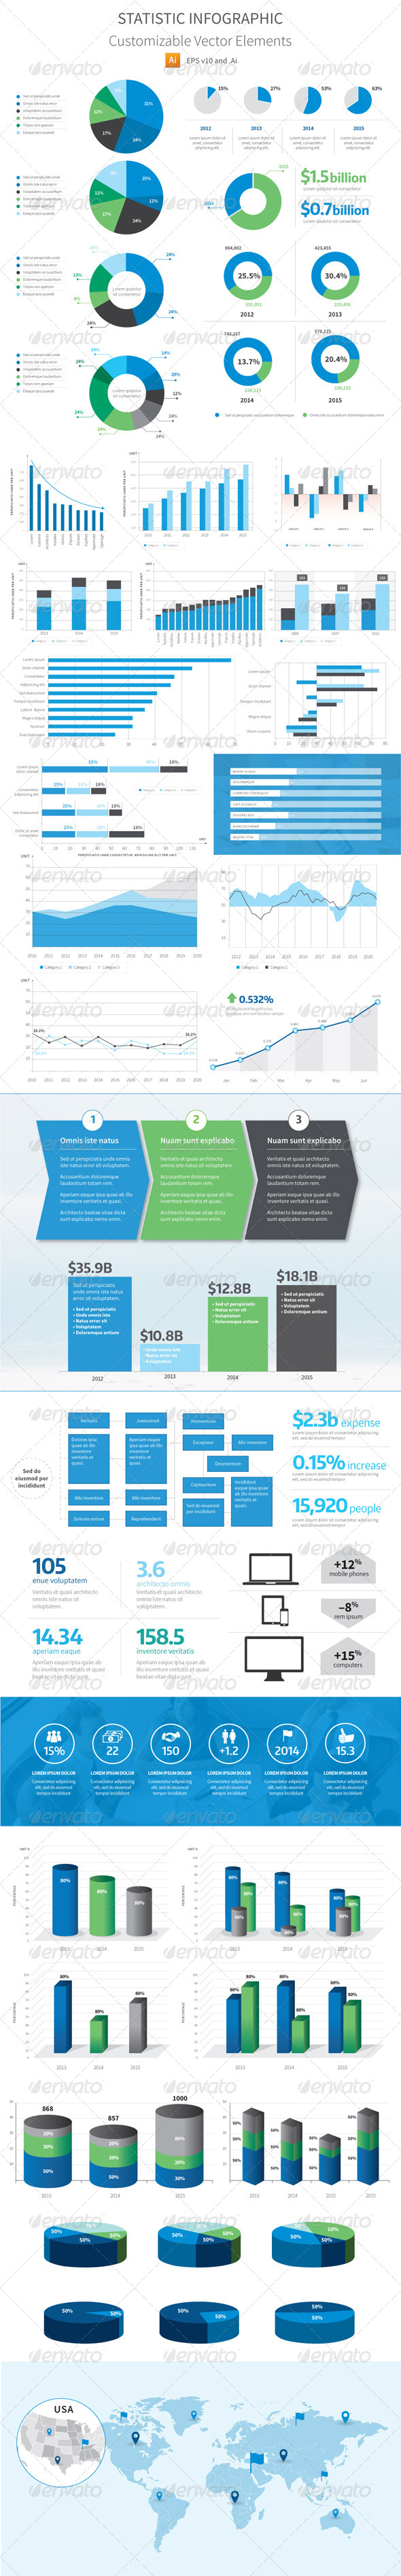 GraphicRiver Statistic Infographic Vector 8416776